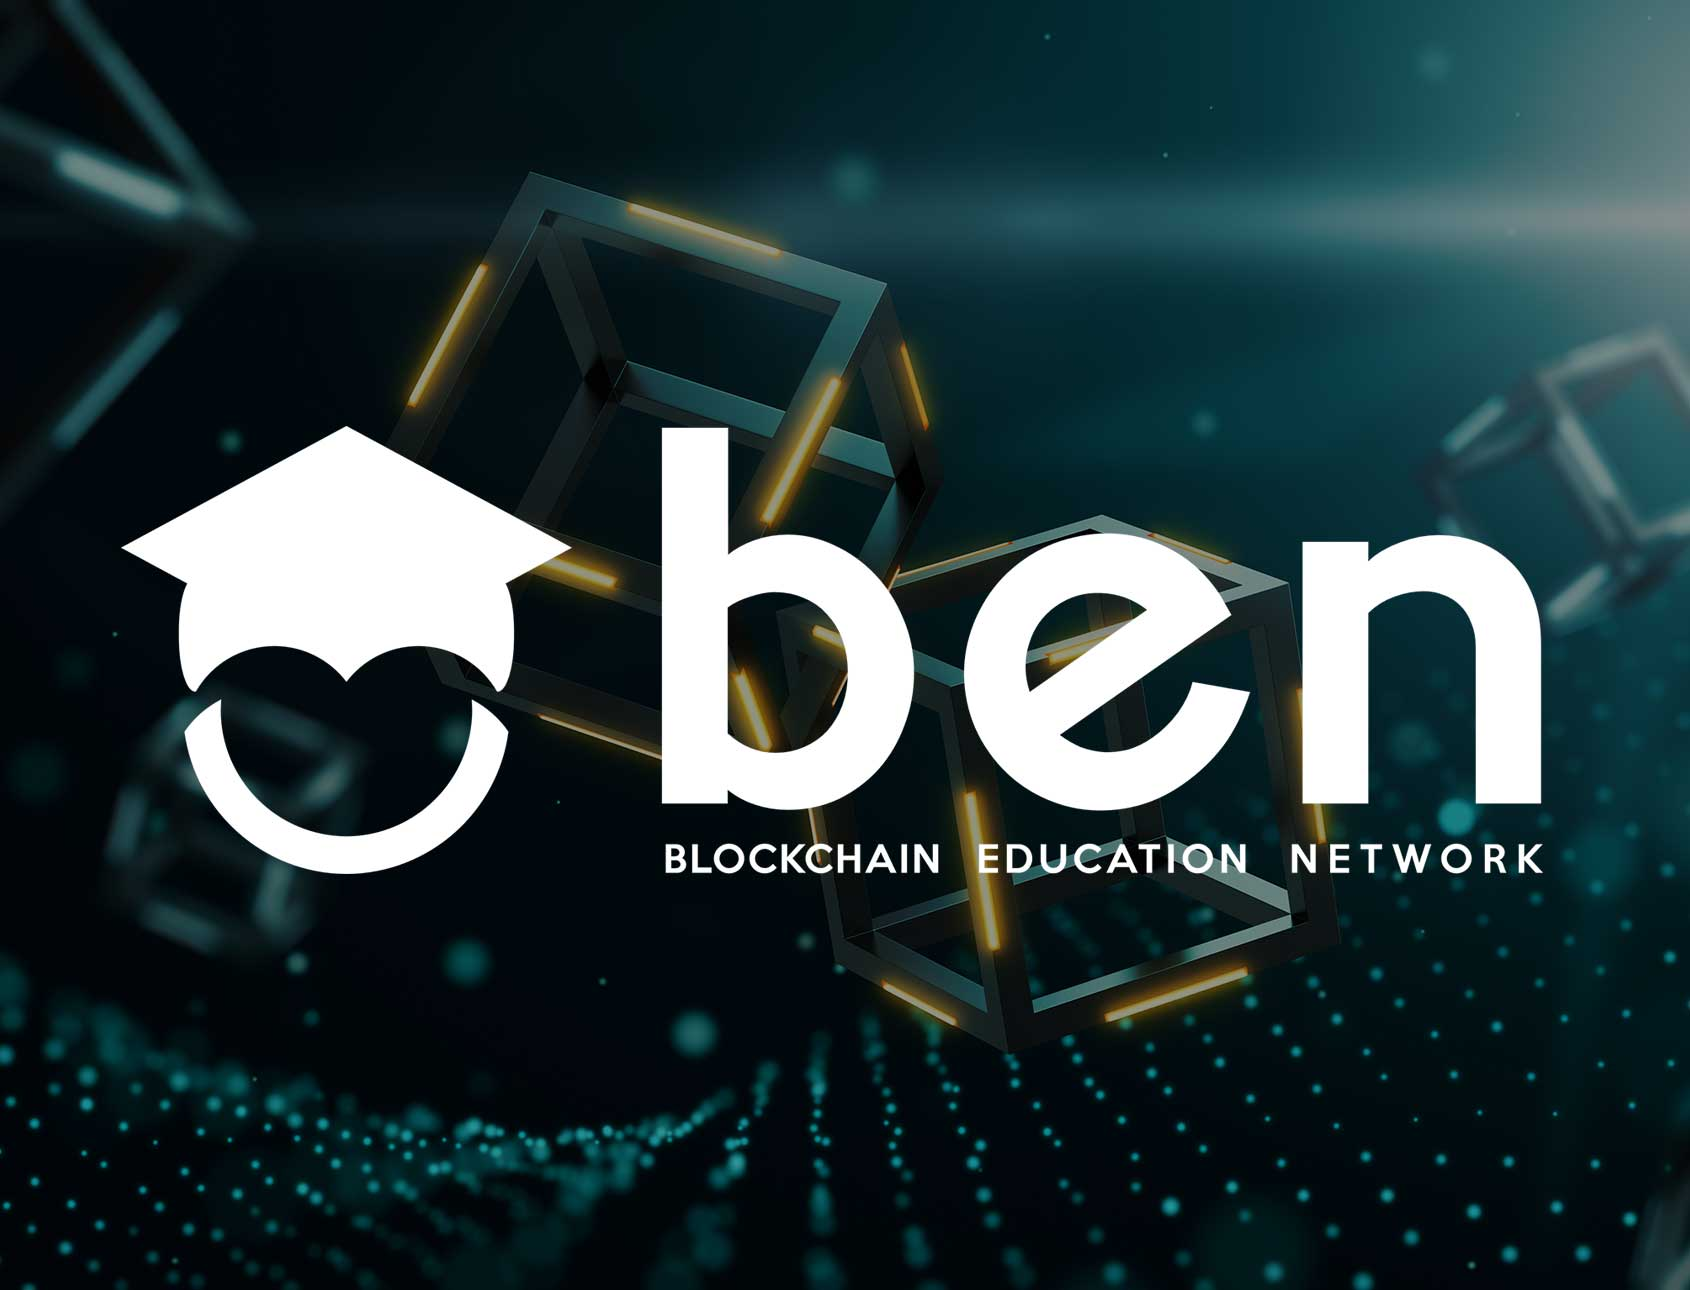 Che cos'è il Blockchain Education Network (BEN)? Intervista ad Emiliano Palermo